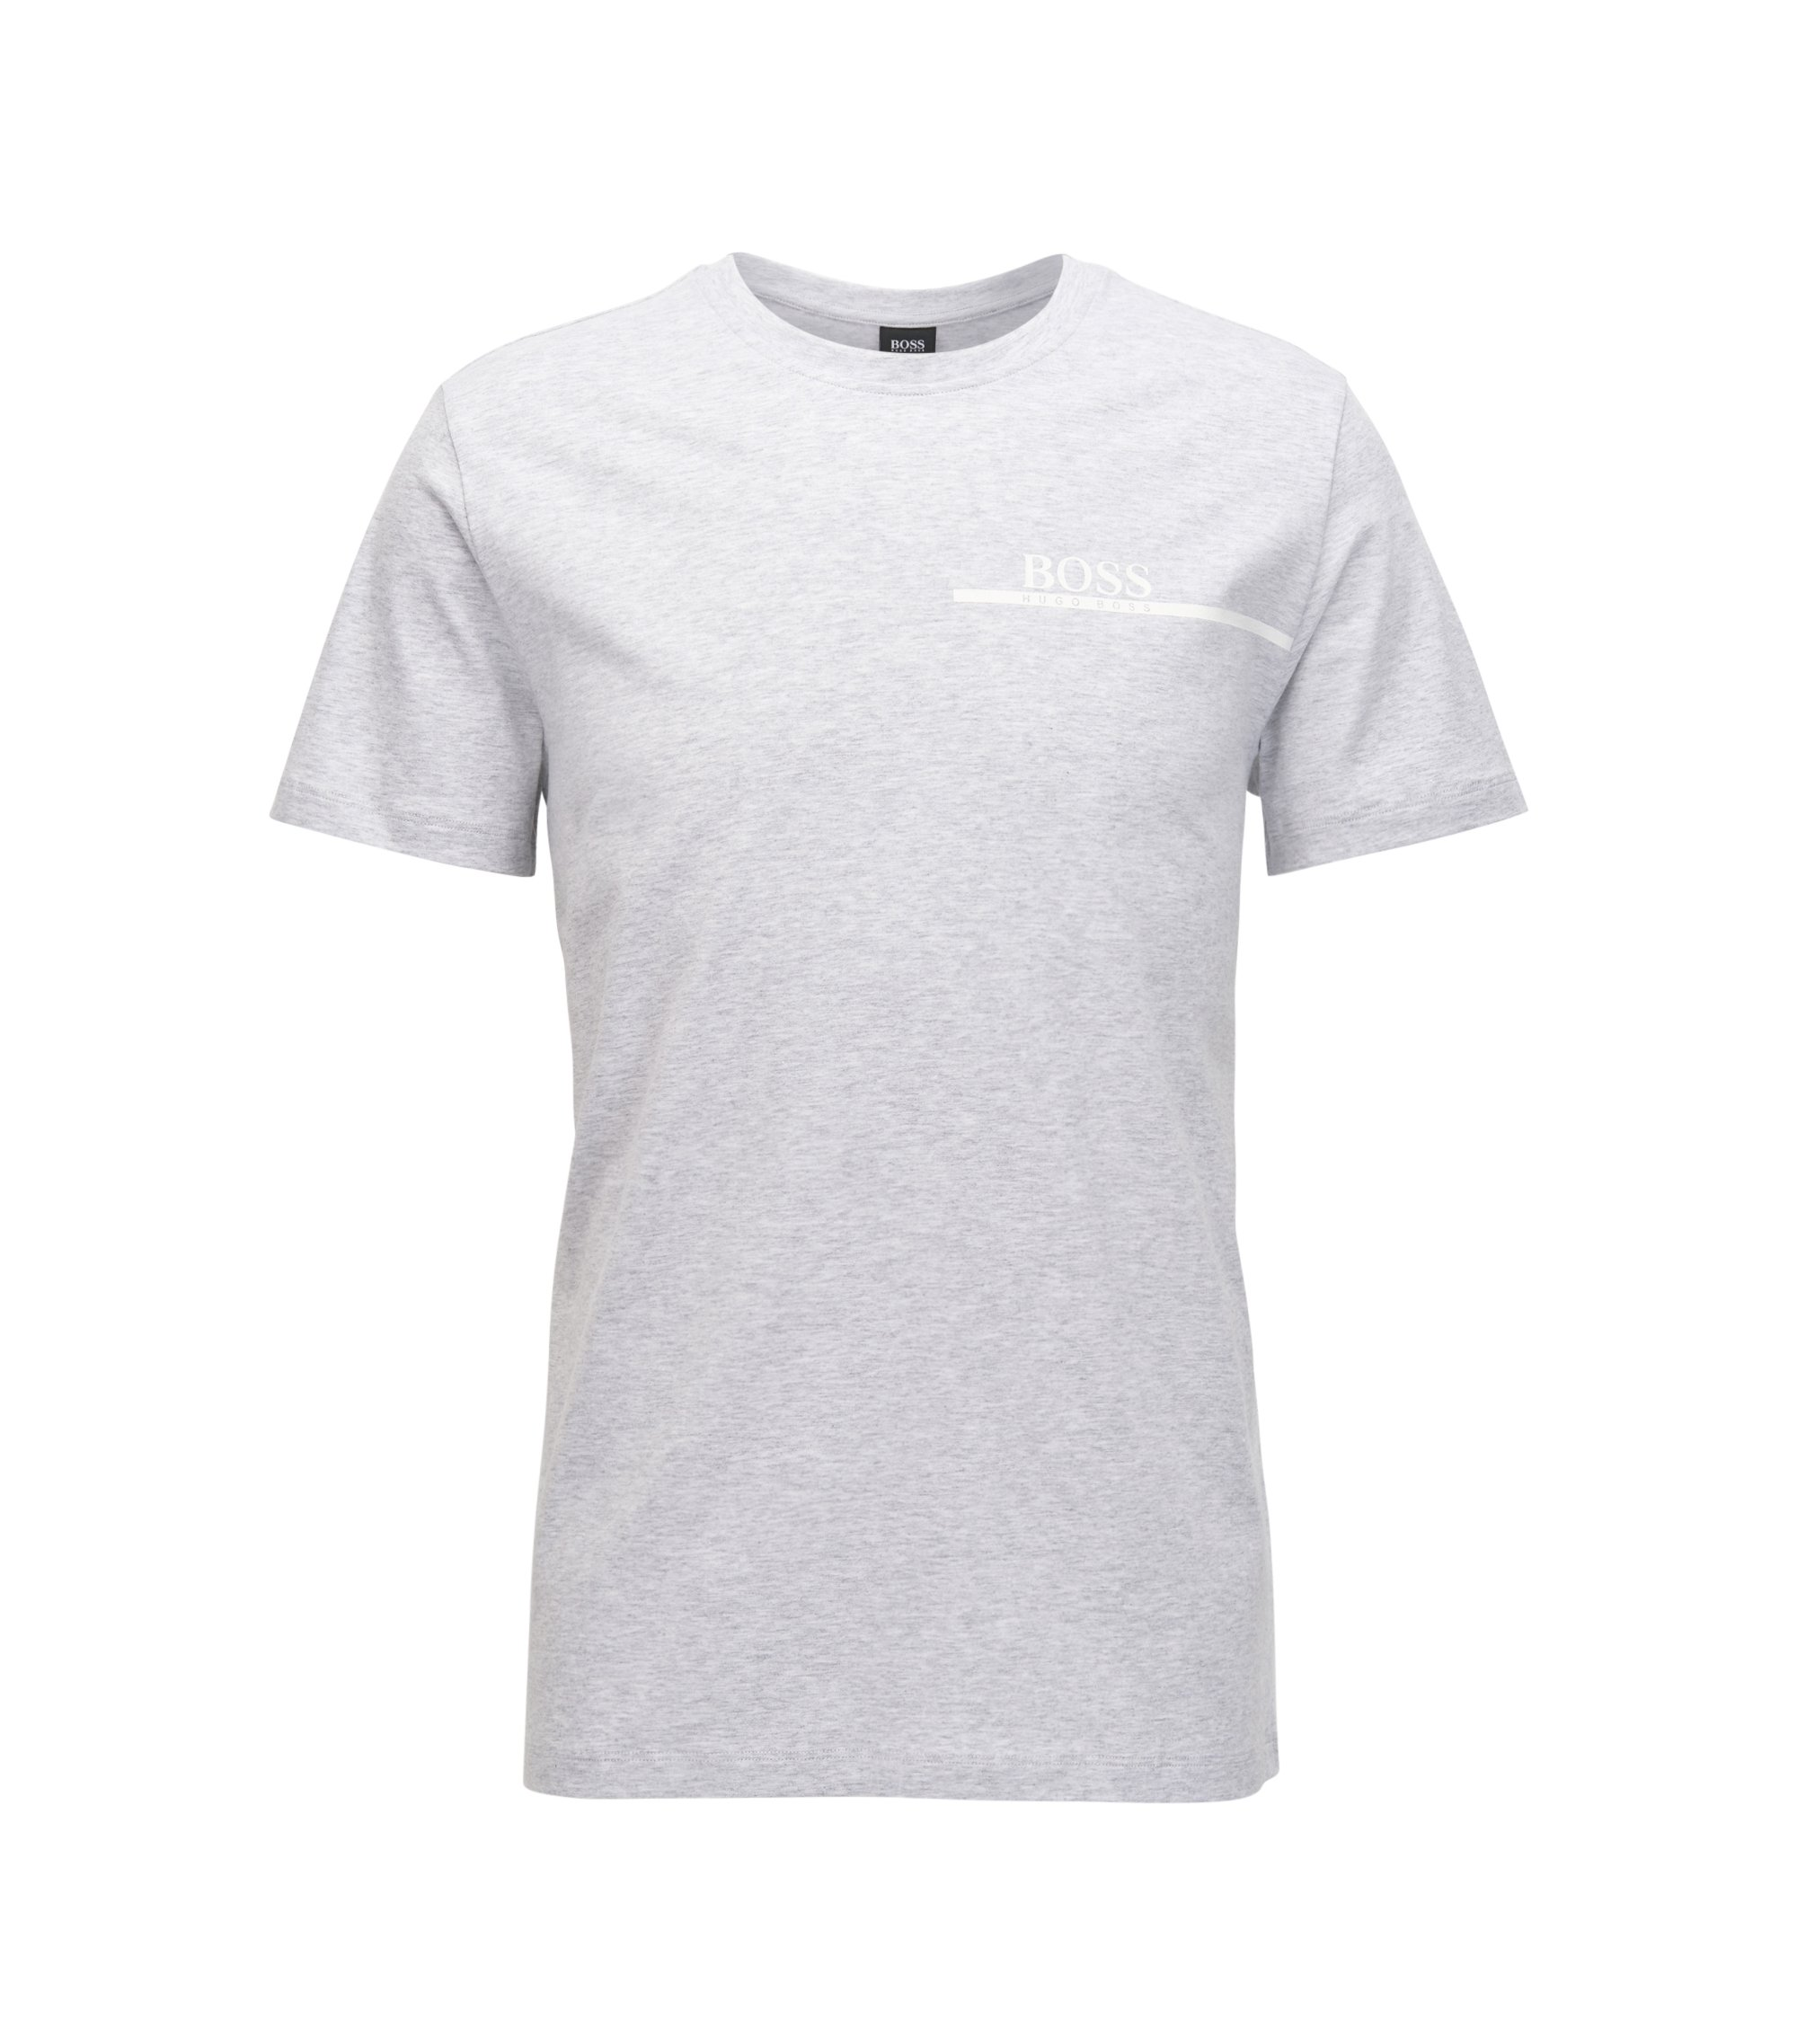 Relaxed-fit cotton T-shirt with logo print, Silver